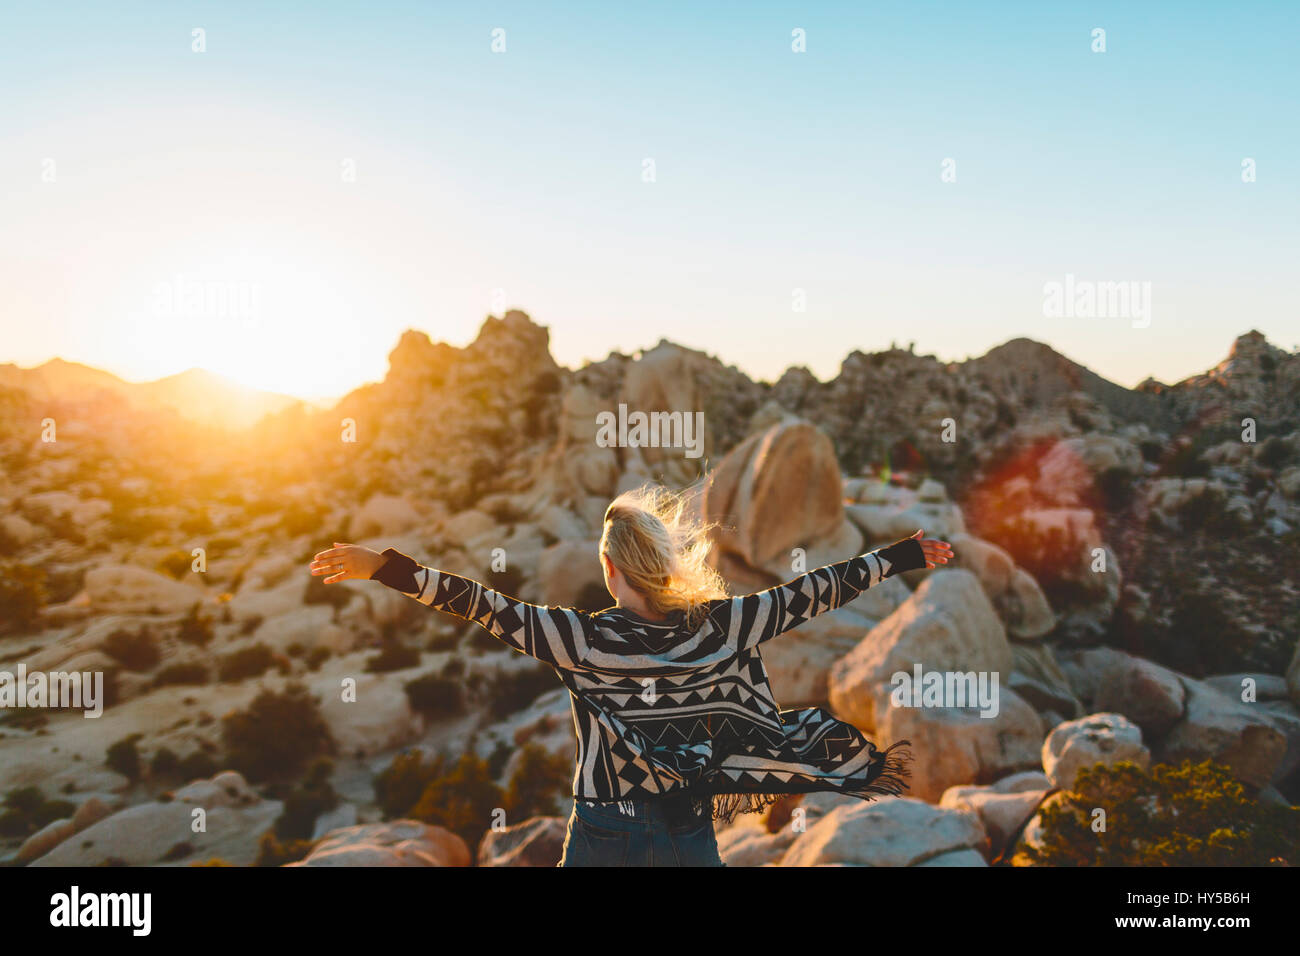 USA, California, Woman spreading arms in Joshua Tree National Park - Stock Image